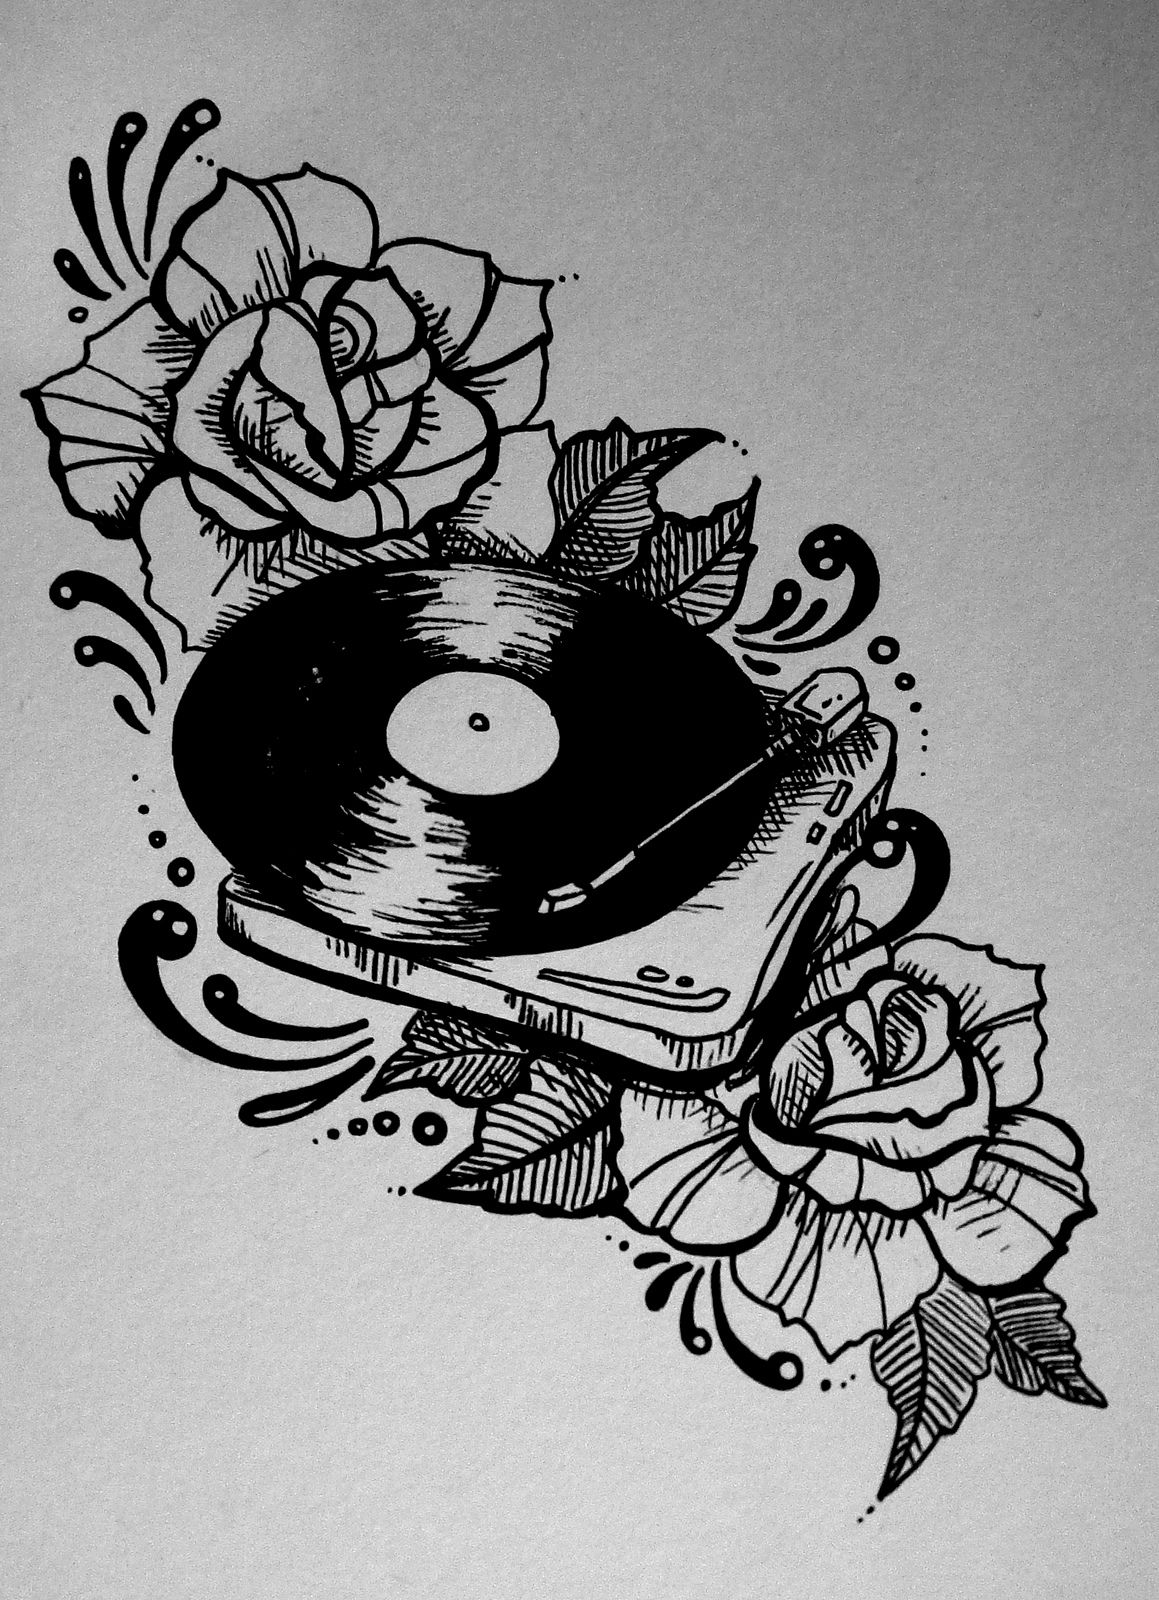 record player, roses, traditional tattoo style illustration